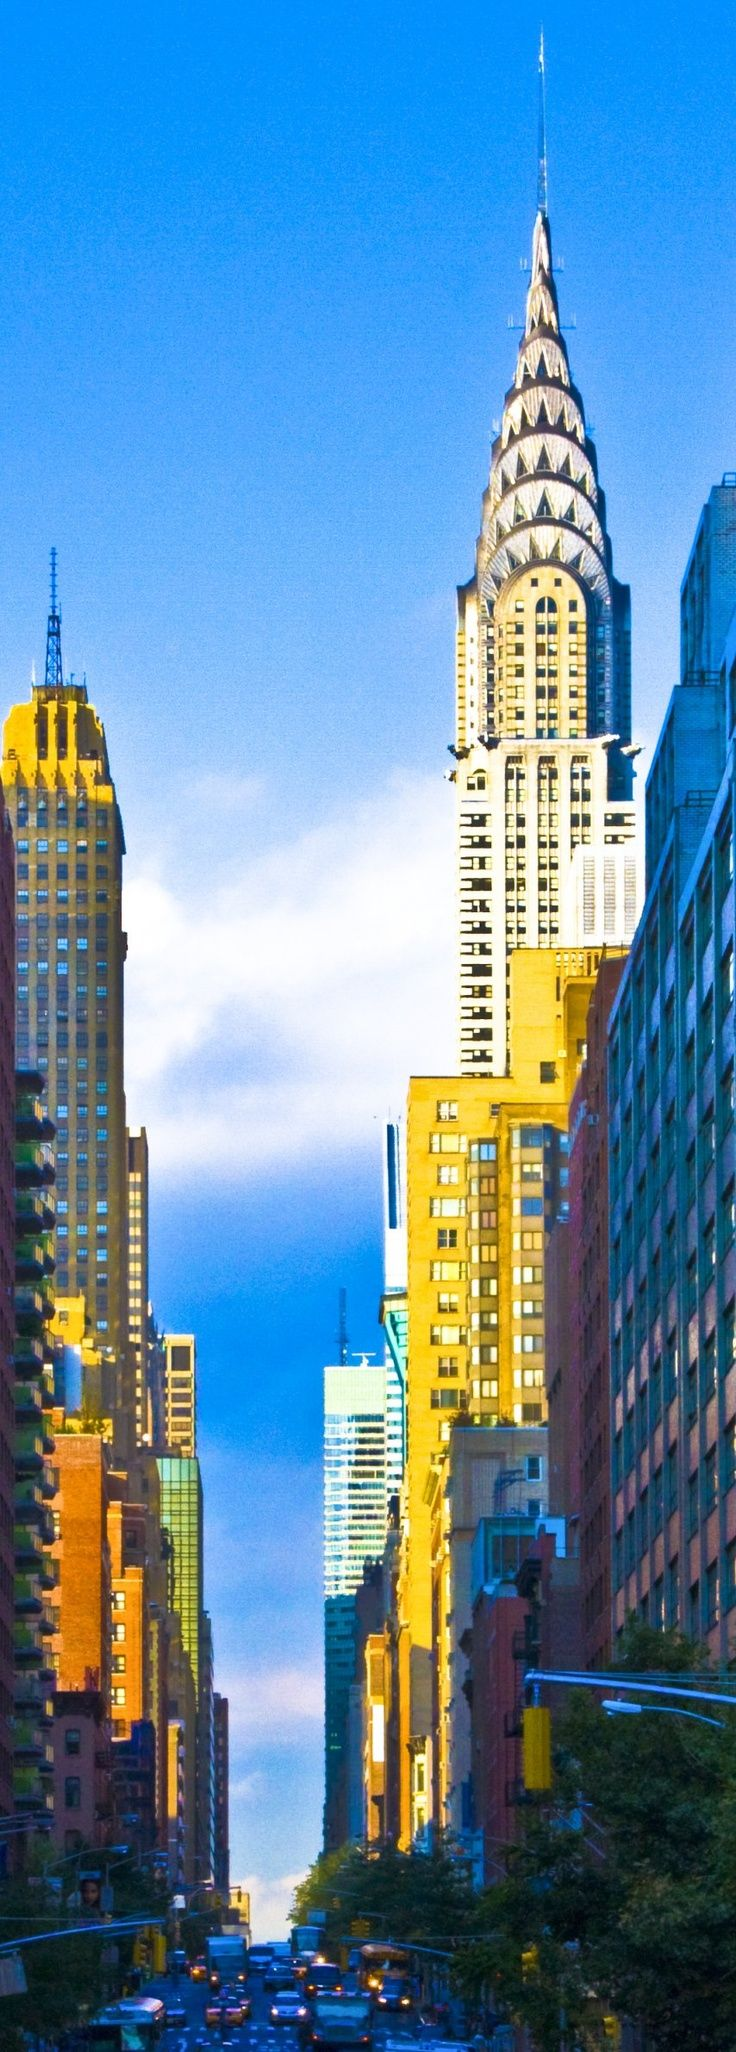 New York.I want to go see this place one day.Please check out my website thanks. www.photopix.co.nz